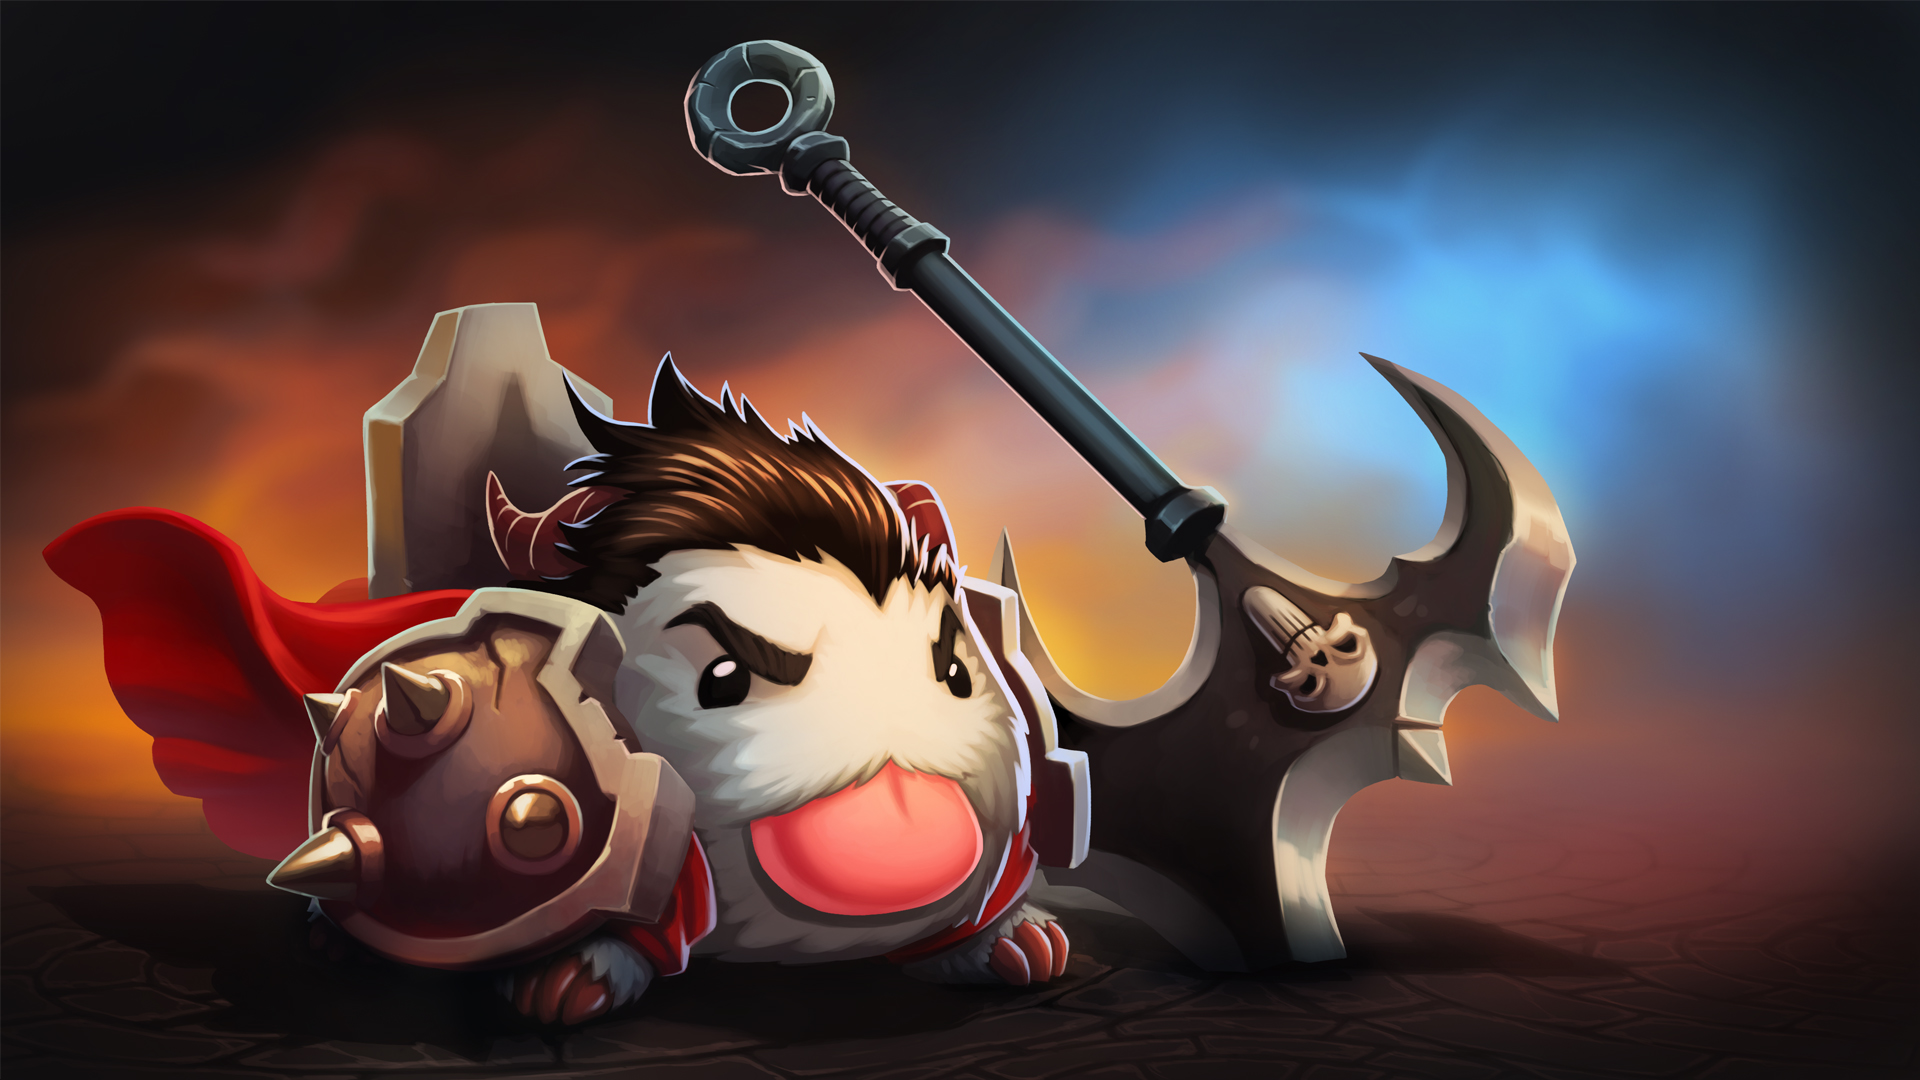 League Of Legends Images Poro Darius Hd Wallpaper And Background